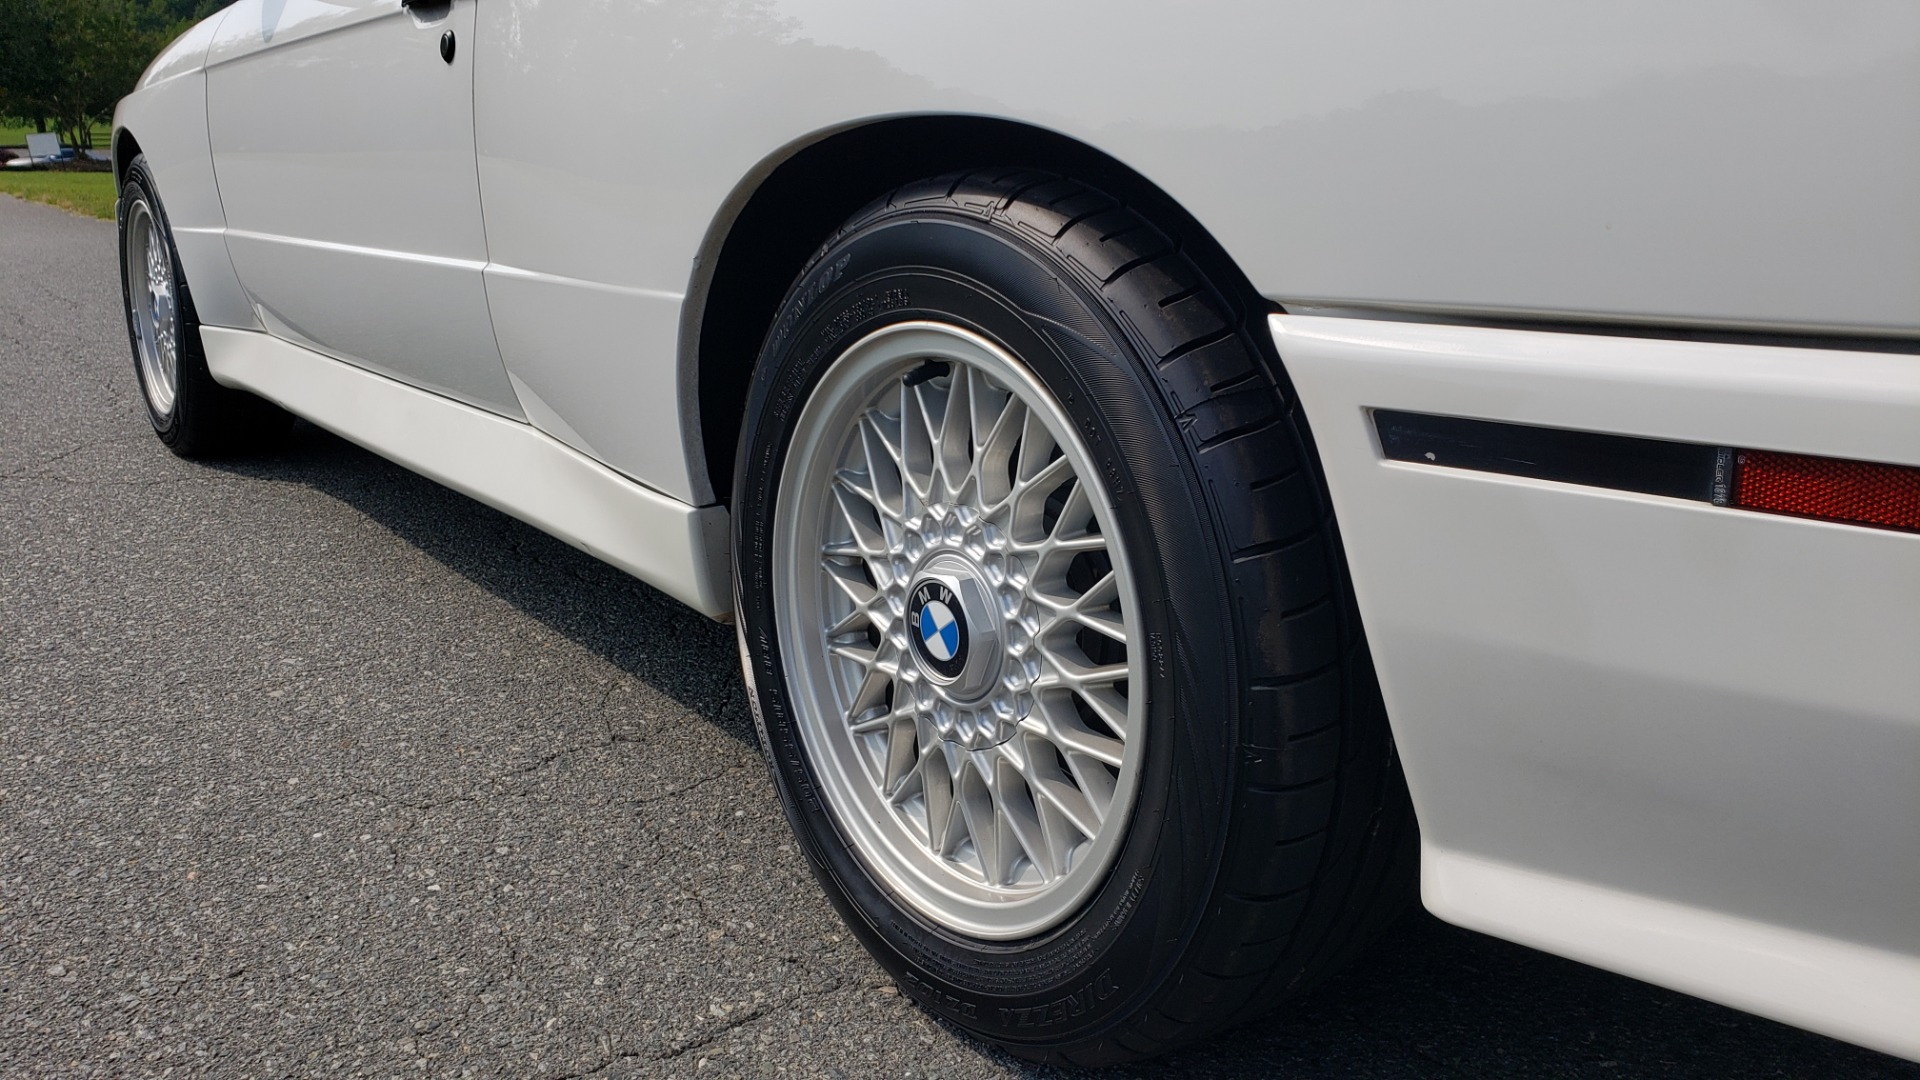 Used 1989 BMW M3 COUPE 2DR / 5-SPEED MAN / LOW MILES / SUPER CLEAN for sale Sold at Formula Imports in Charlotte NC 28227 22